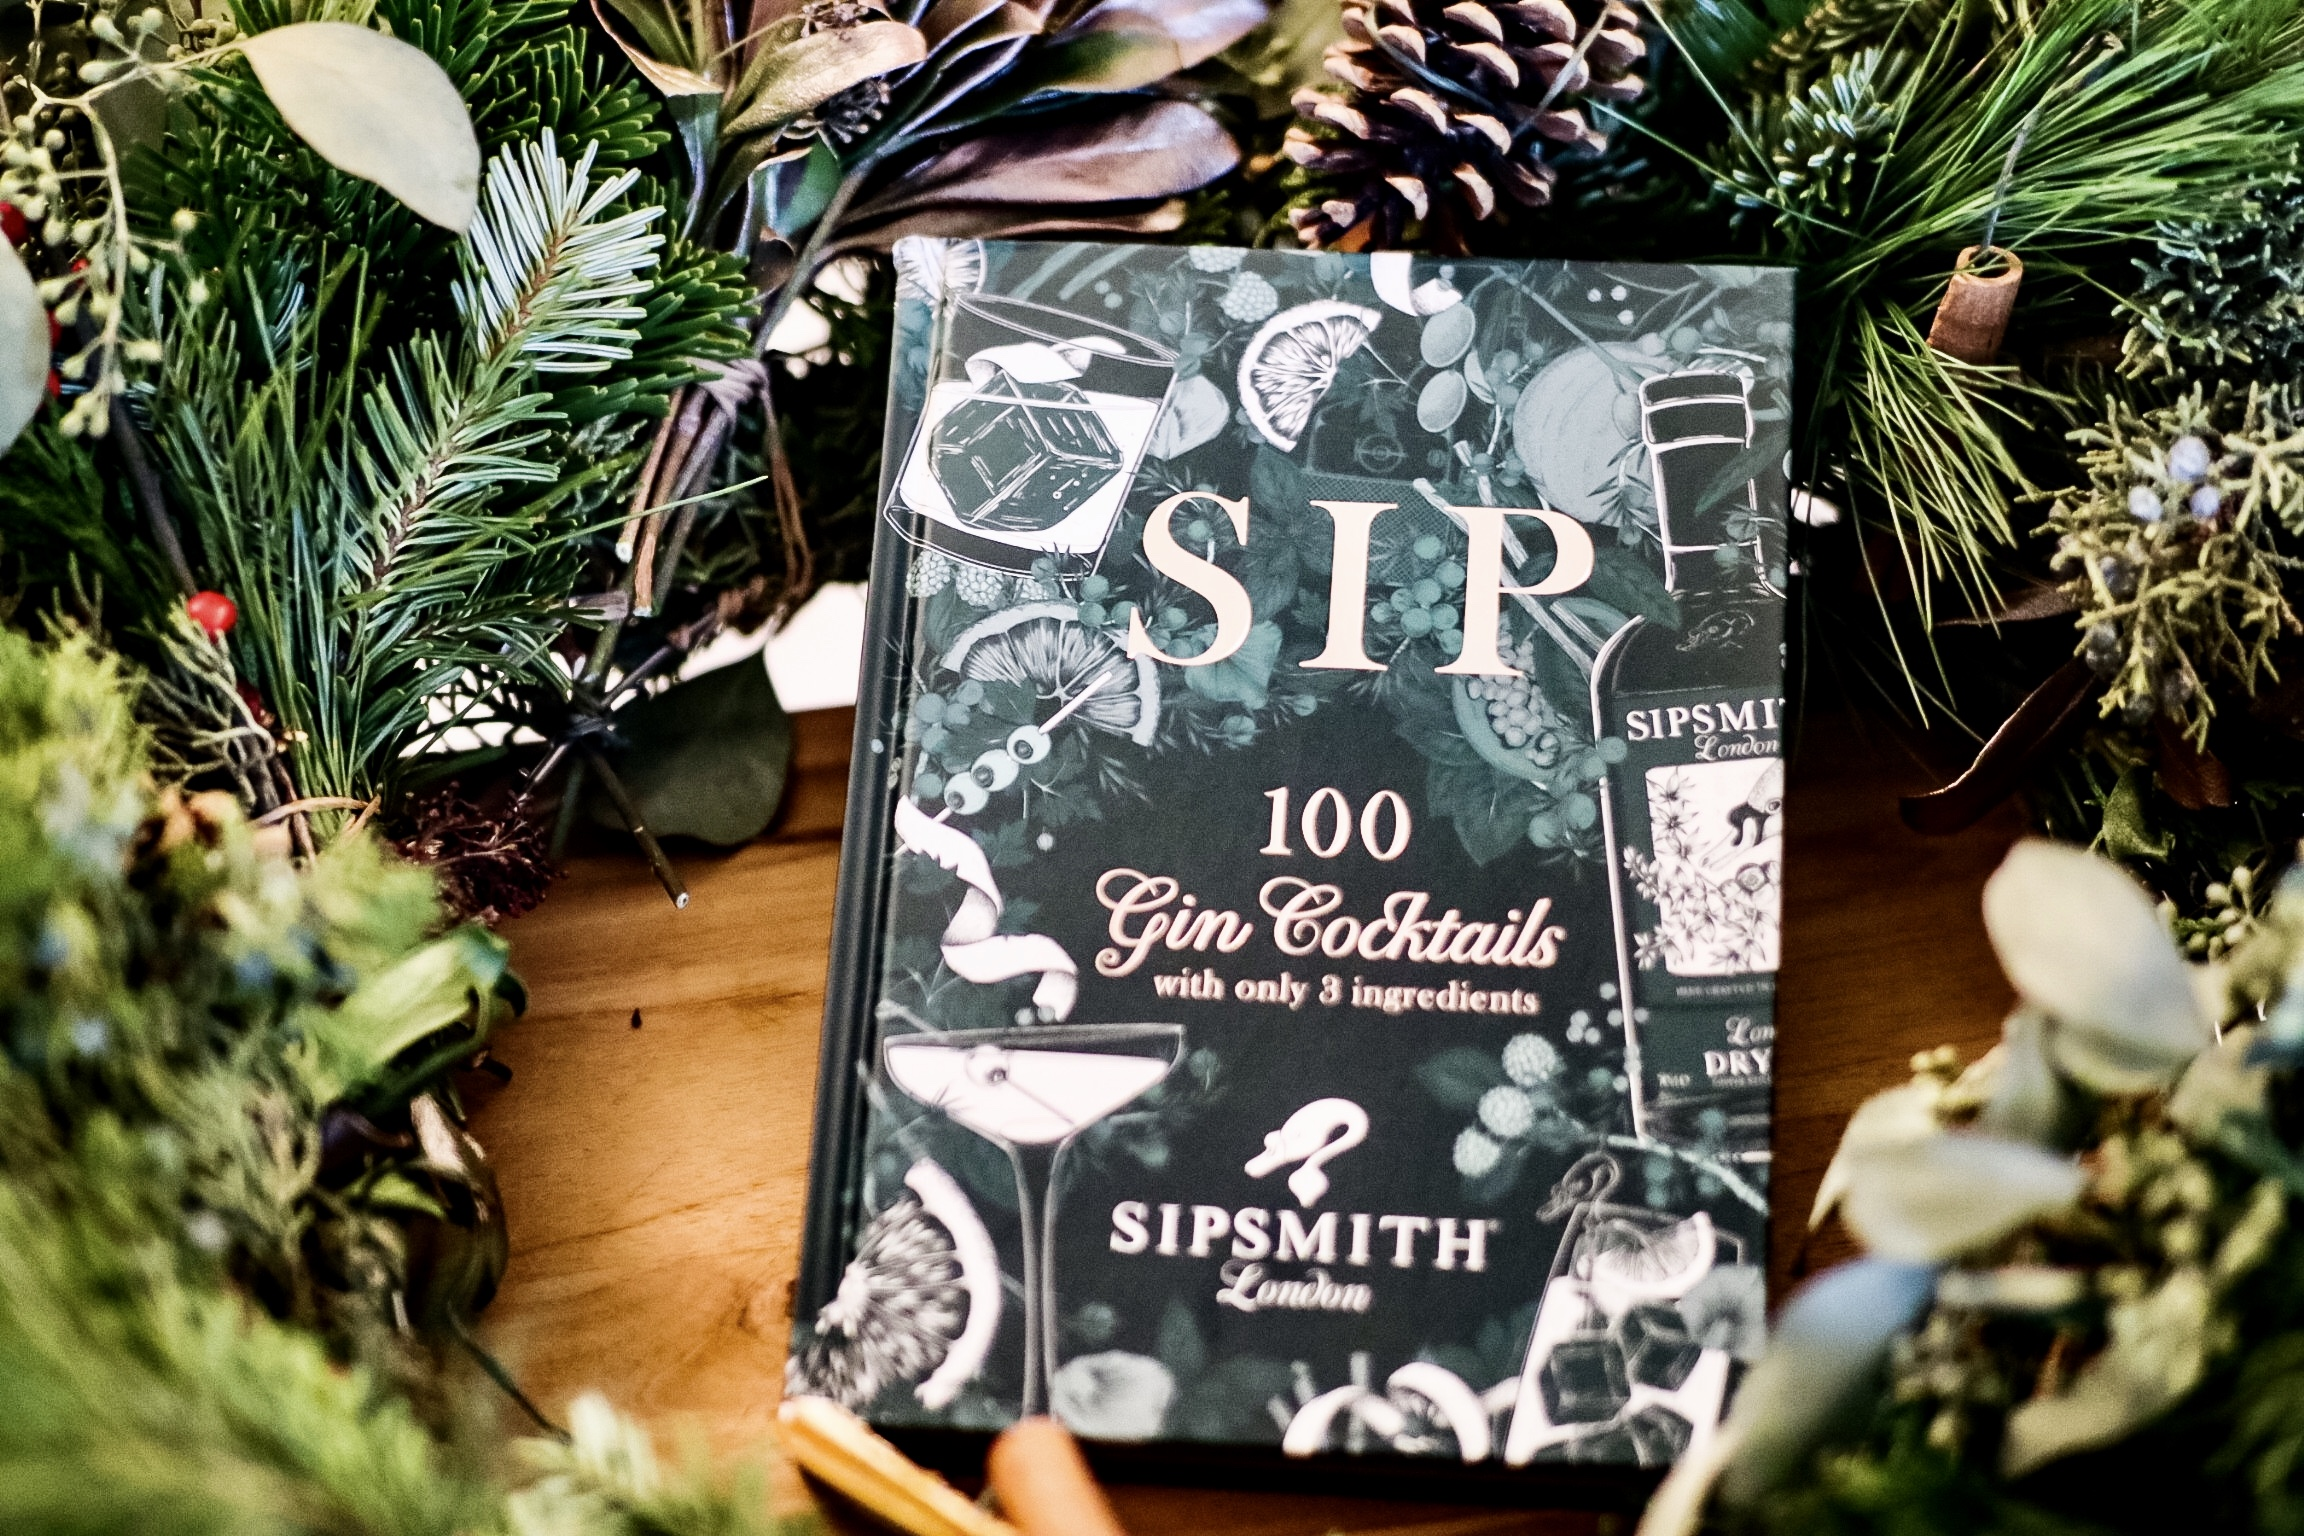 Sip: 100 Gin Cocktails with Only 3 Ingredients